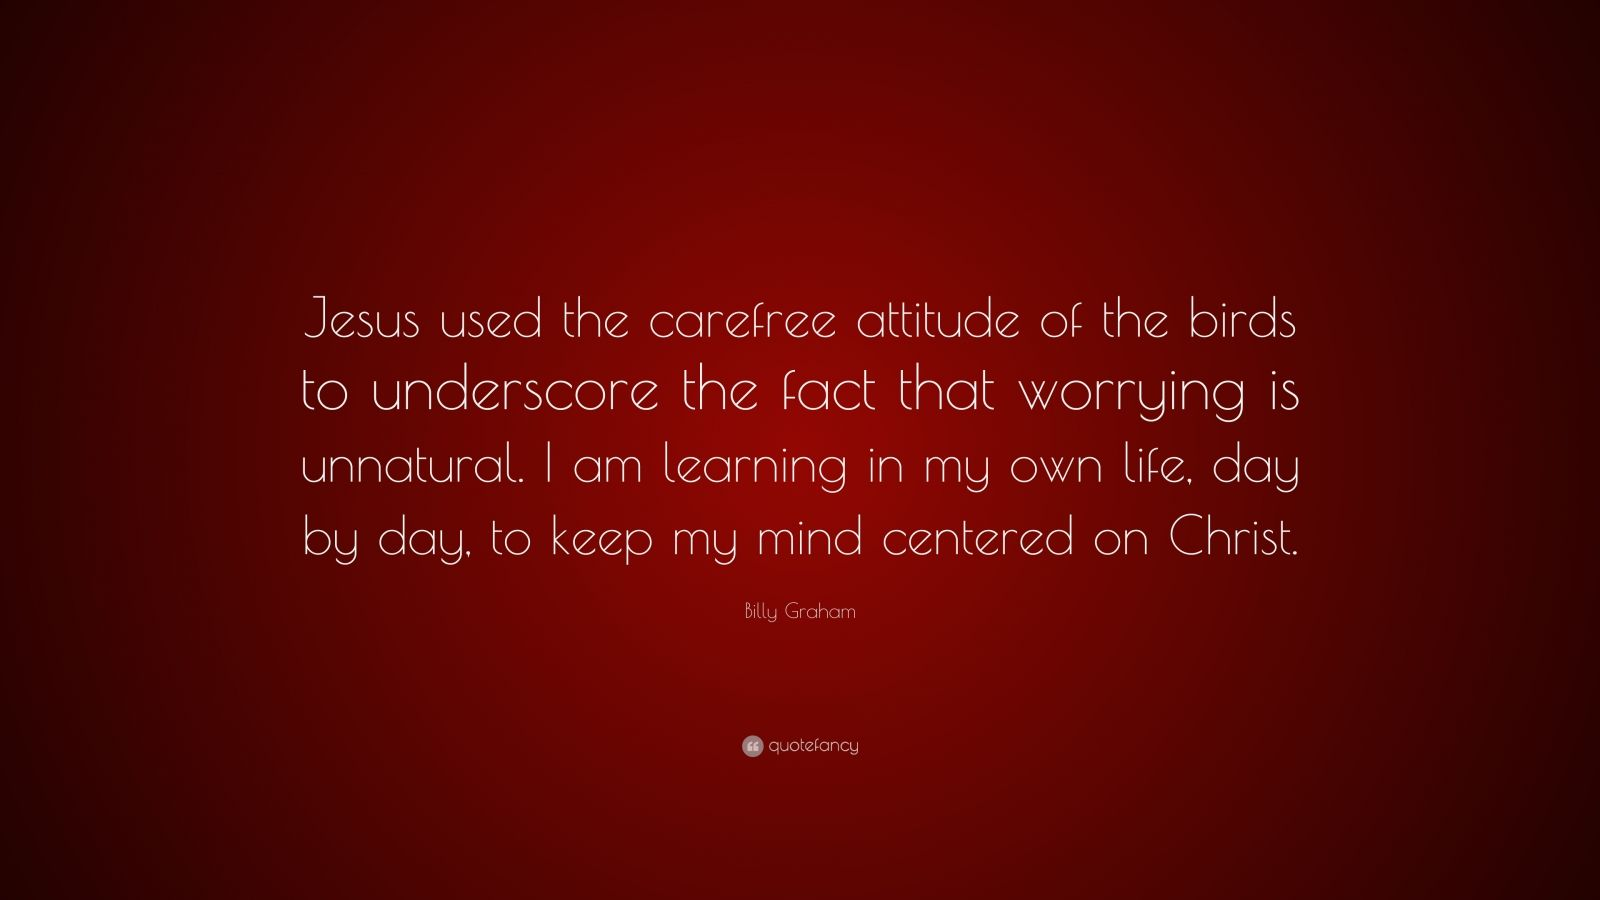 """Billy Graham Quote: """"Jesus used the carefree attitude of the birds to underscore the fact that worrying is unnatural. I am learning in my own life, day by day, to keep my mind centered on Christ."""""""